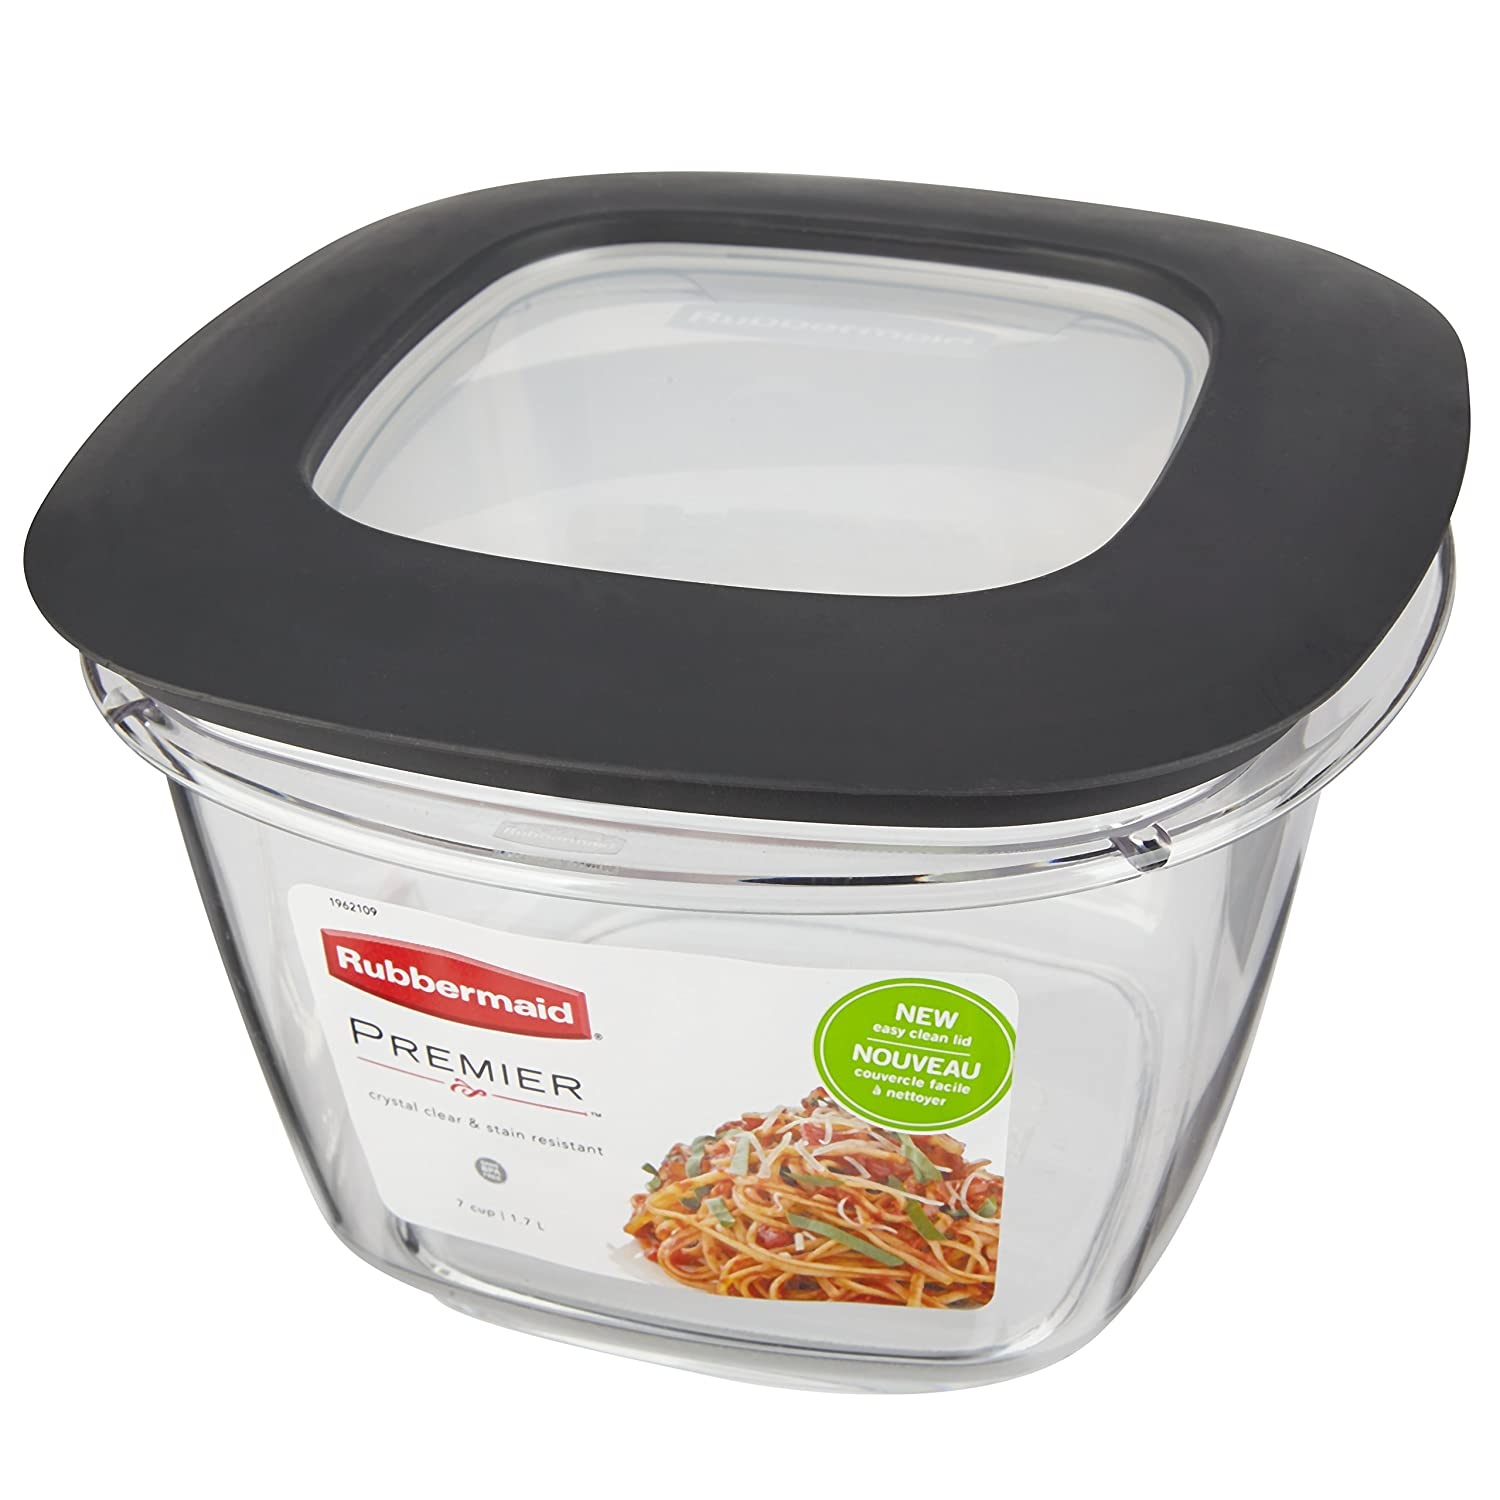 Rubbermaid Rubbermaid Premier Food Storage Container, 7